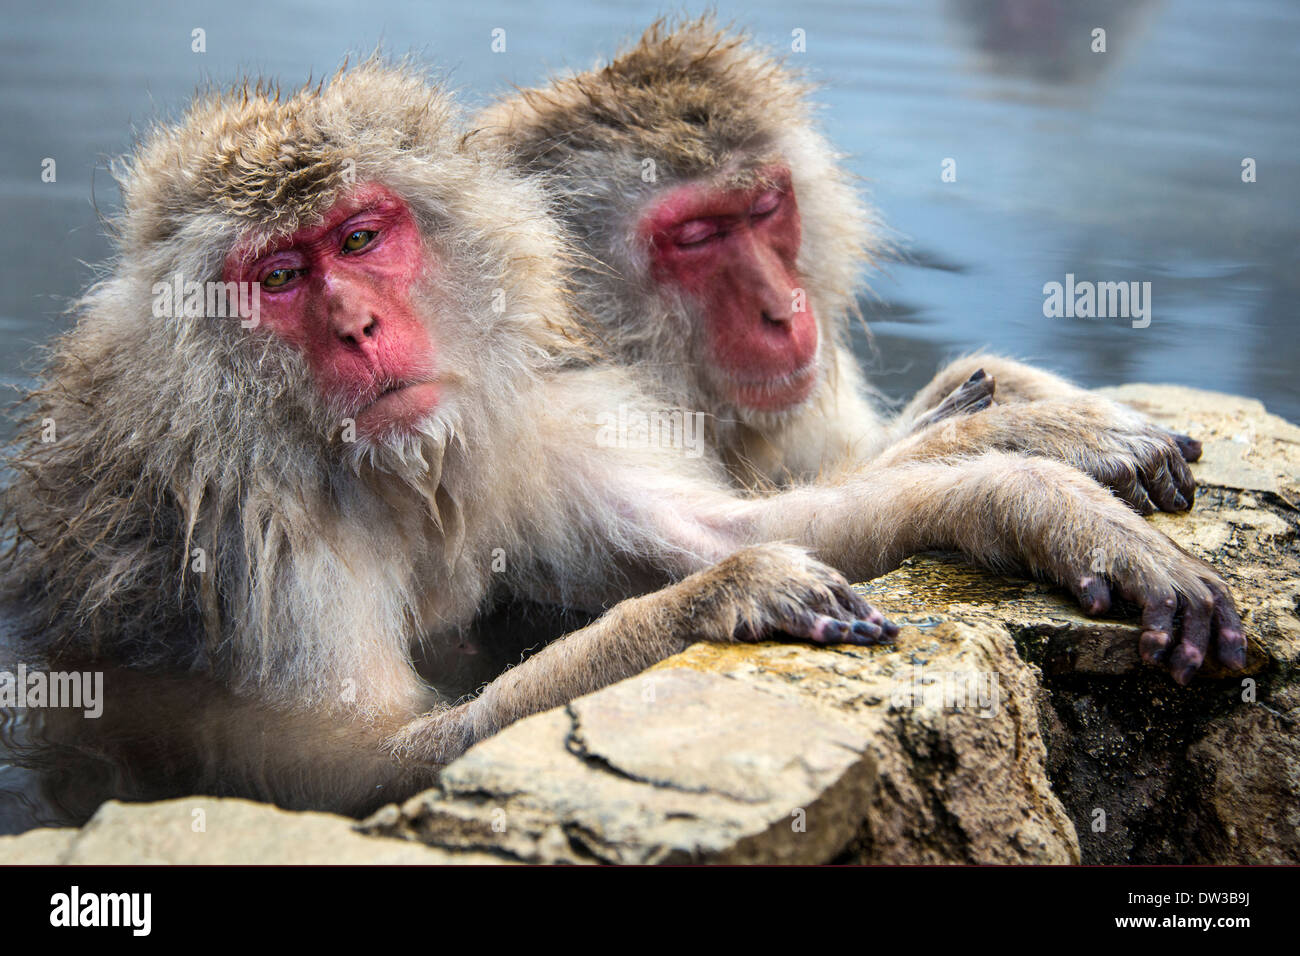 Japanese Snow Monkeys in Nagano, Japan. - Stock Image